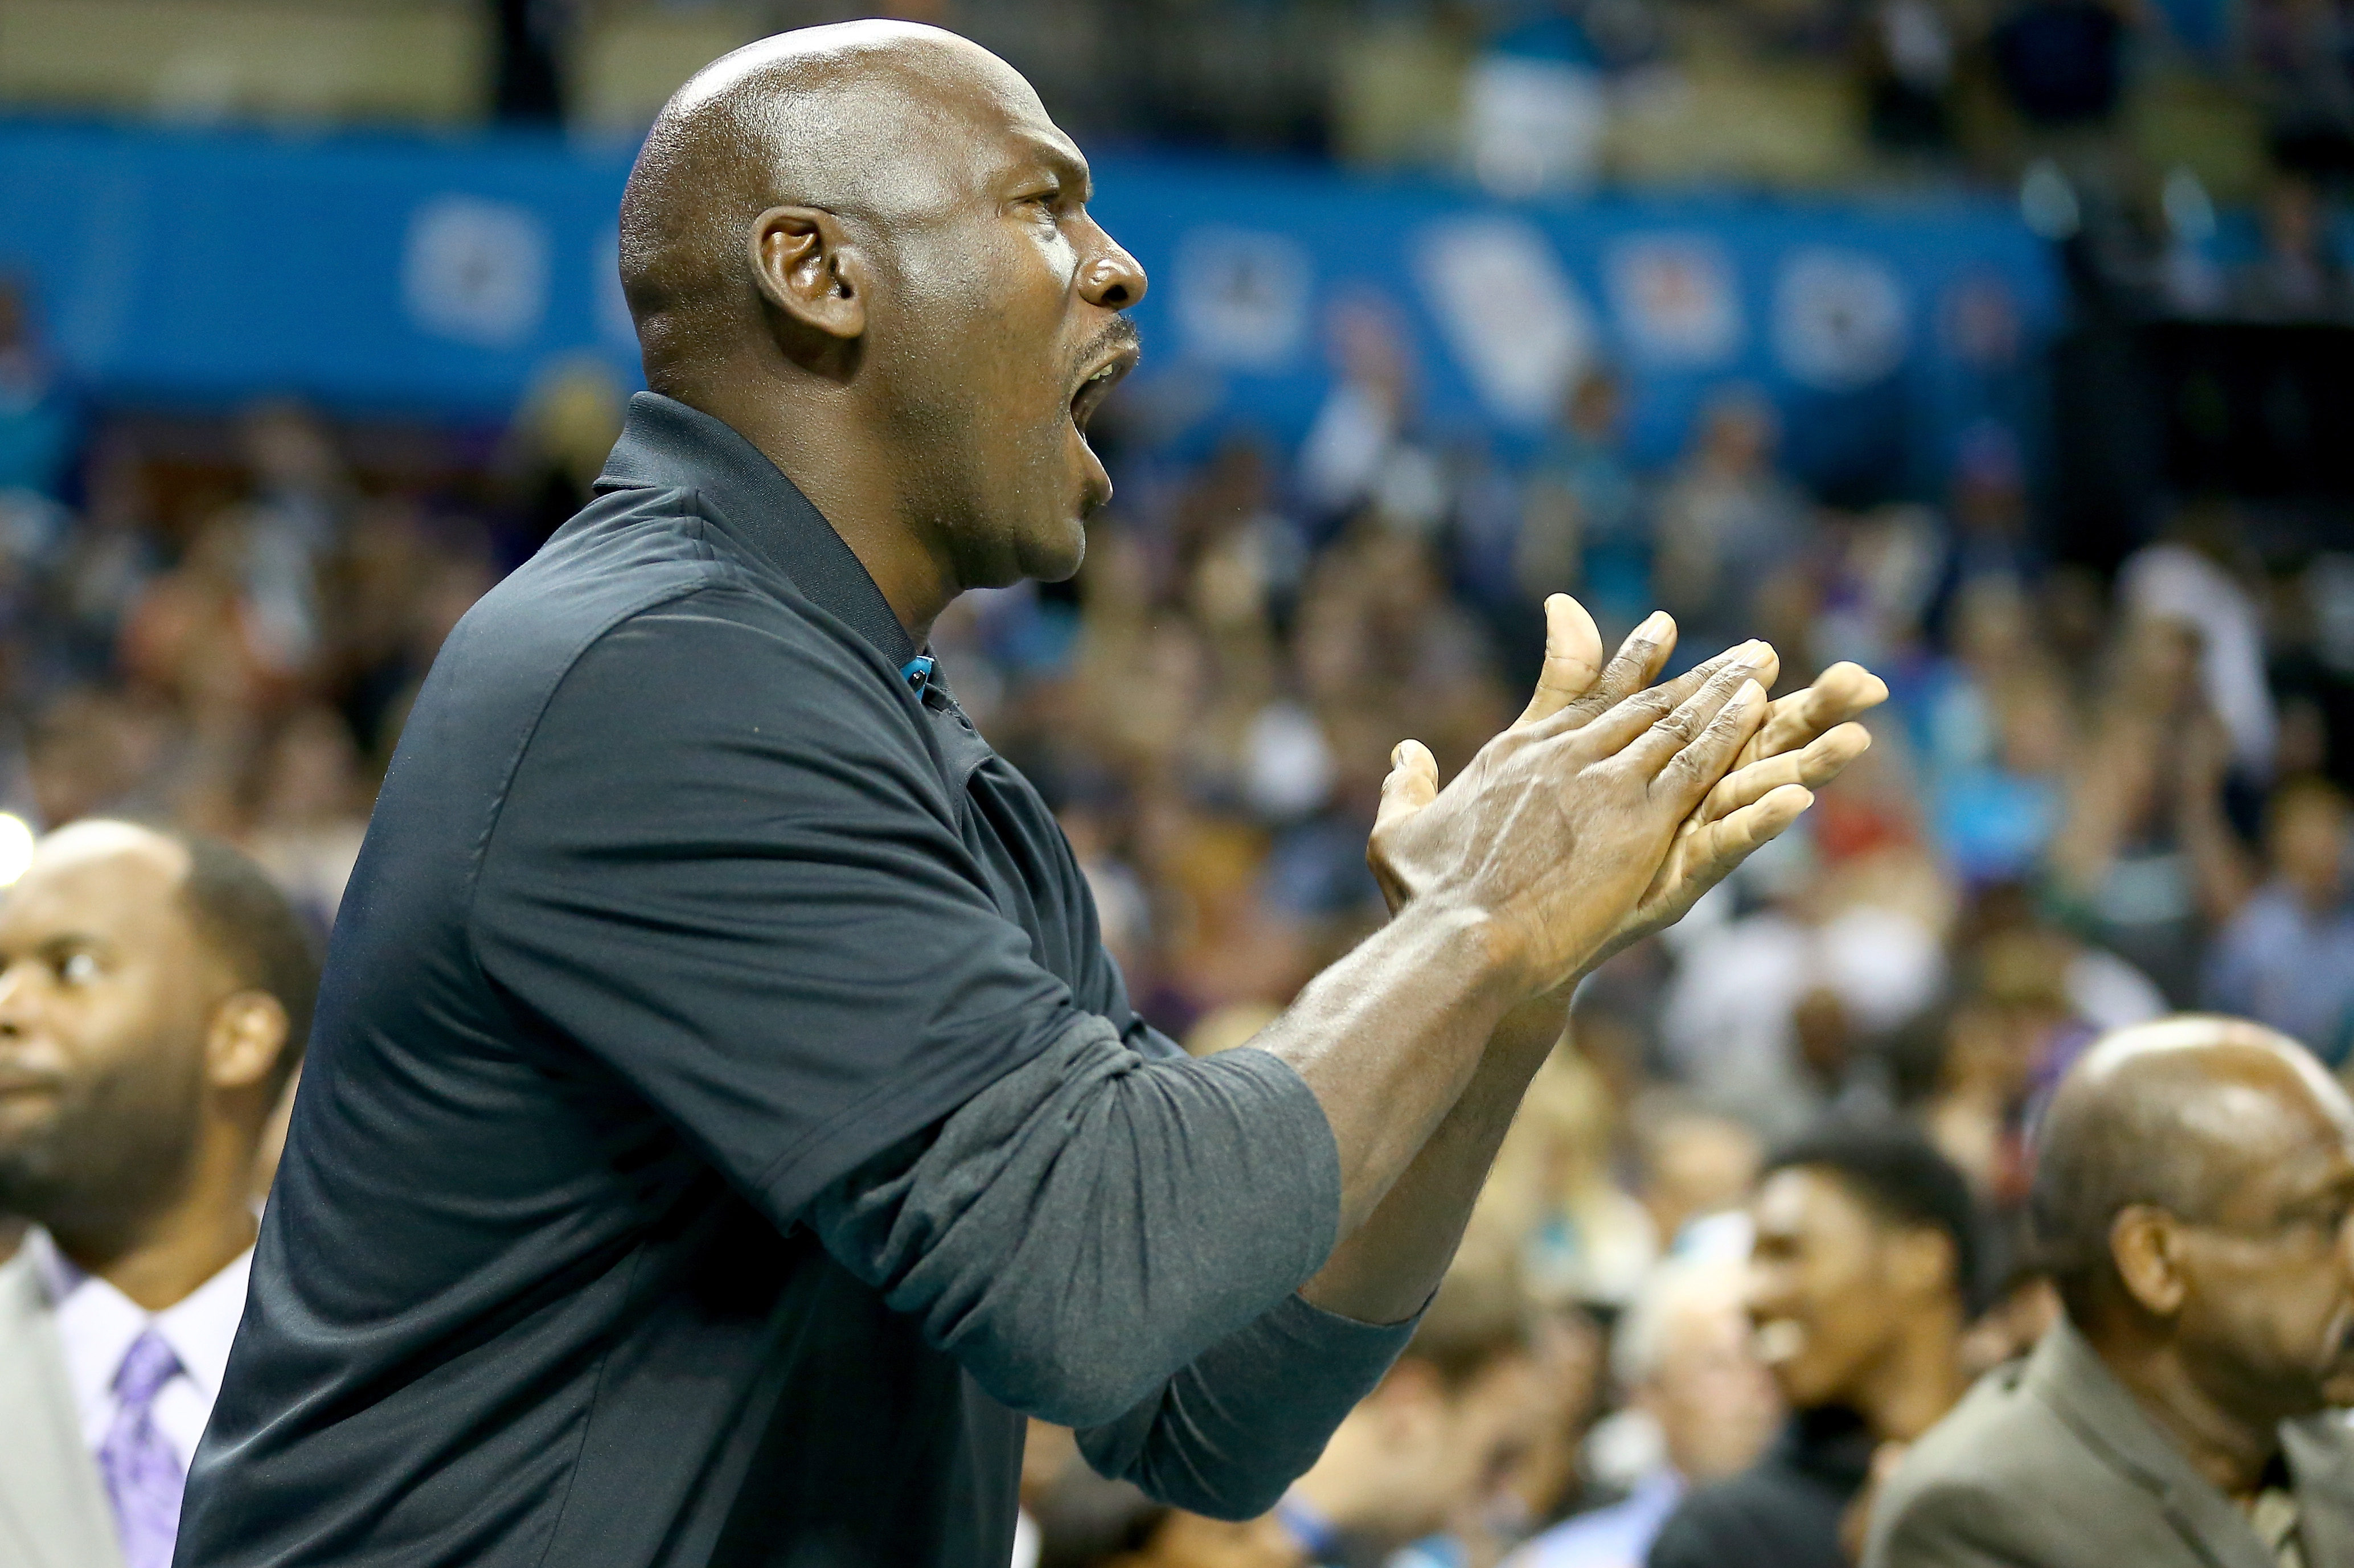 Michael Jordan, owner of the Charlotte Hornets, watches on during their game against the Milwaukee Bucks at Time Warner Cable Arena on October 29, 2014 in Charlotte, North Carolina.